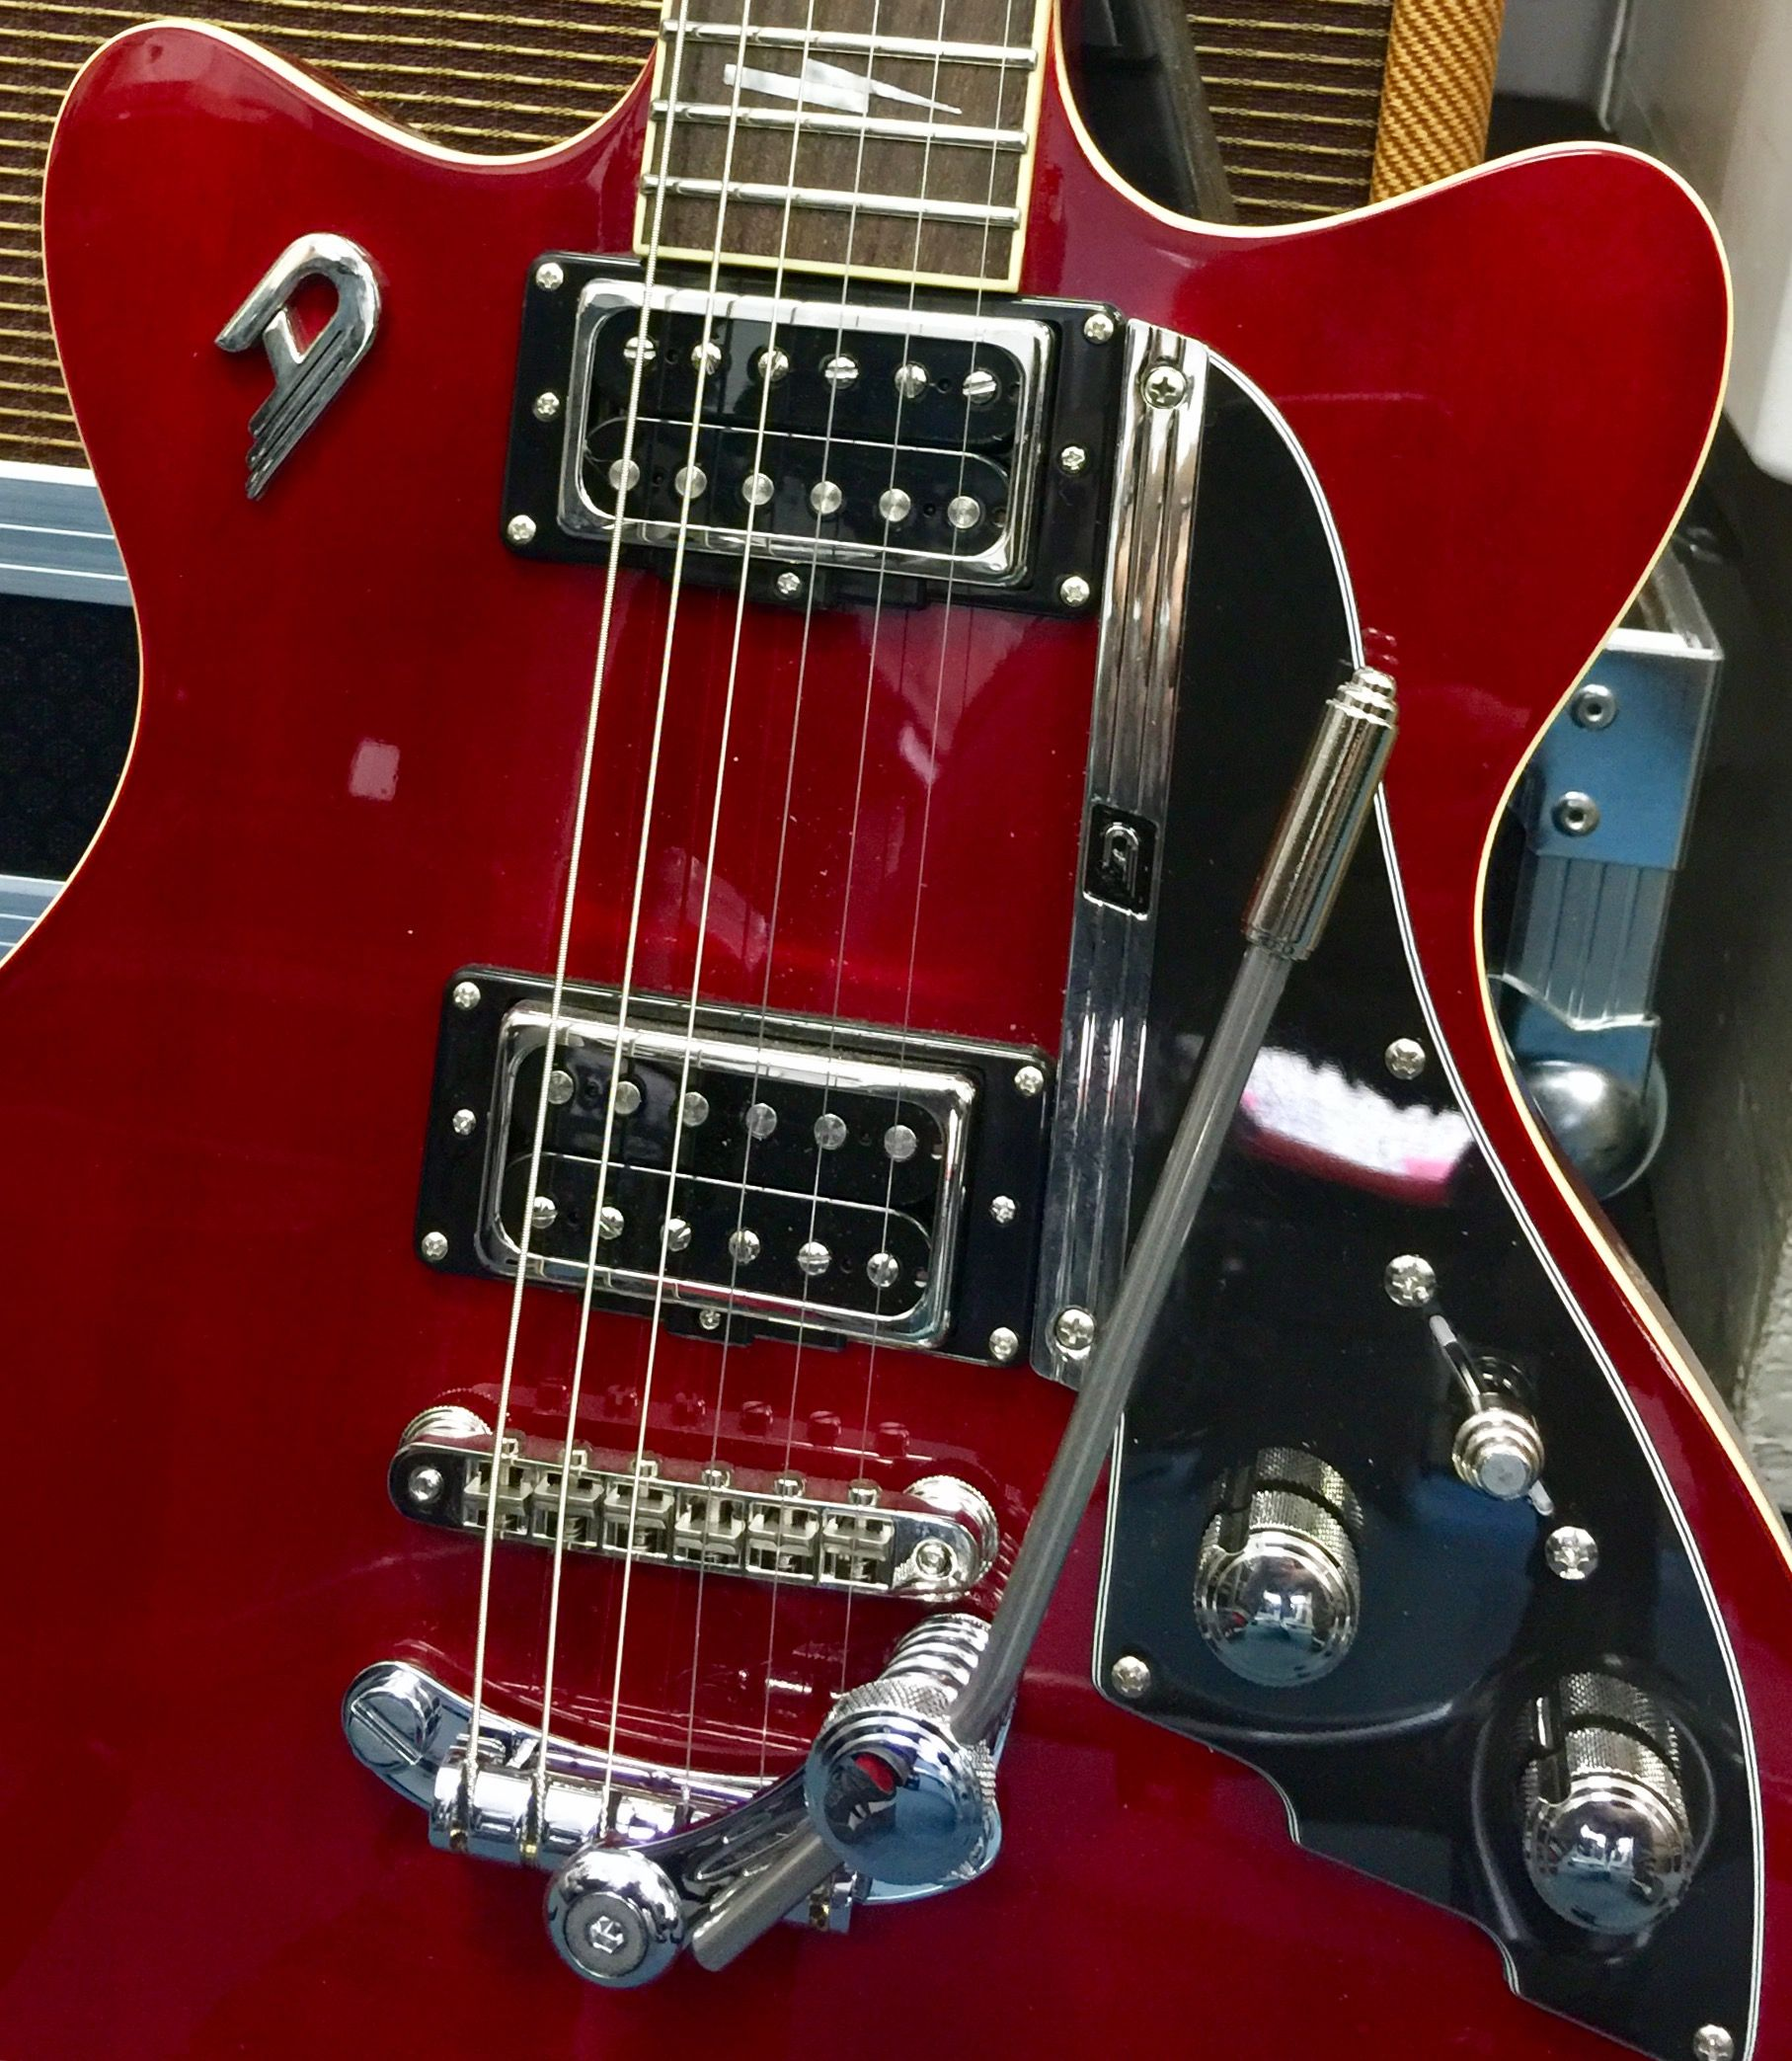 Pin By Frank Radice On Your Pinterest Likes Guitar Electric Guitar Music Instruments